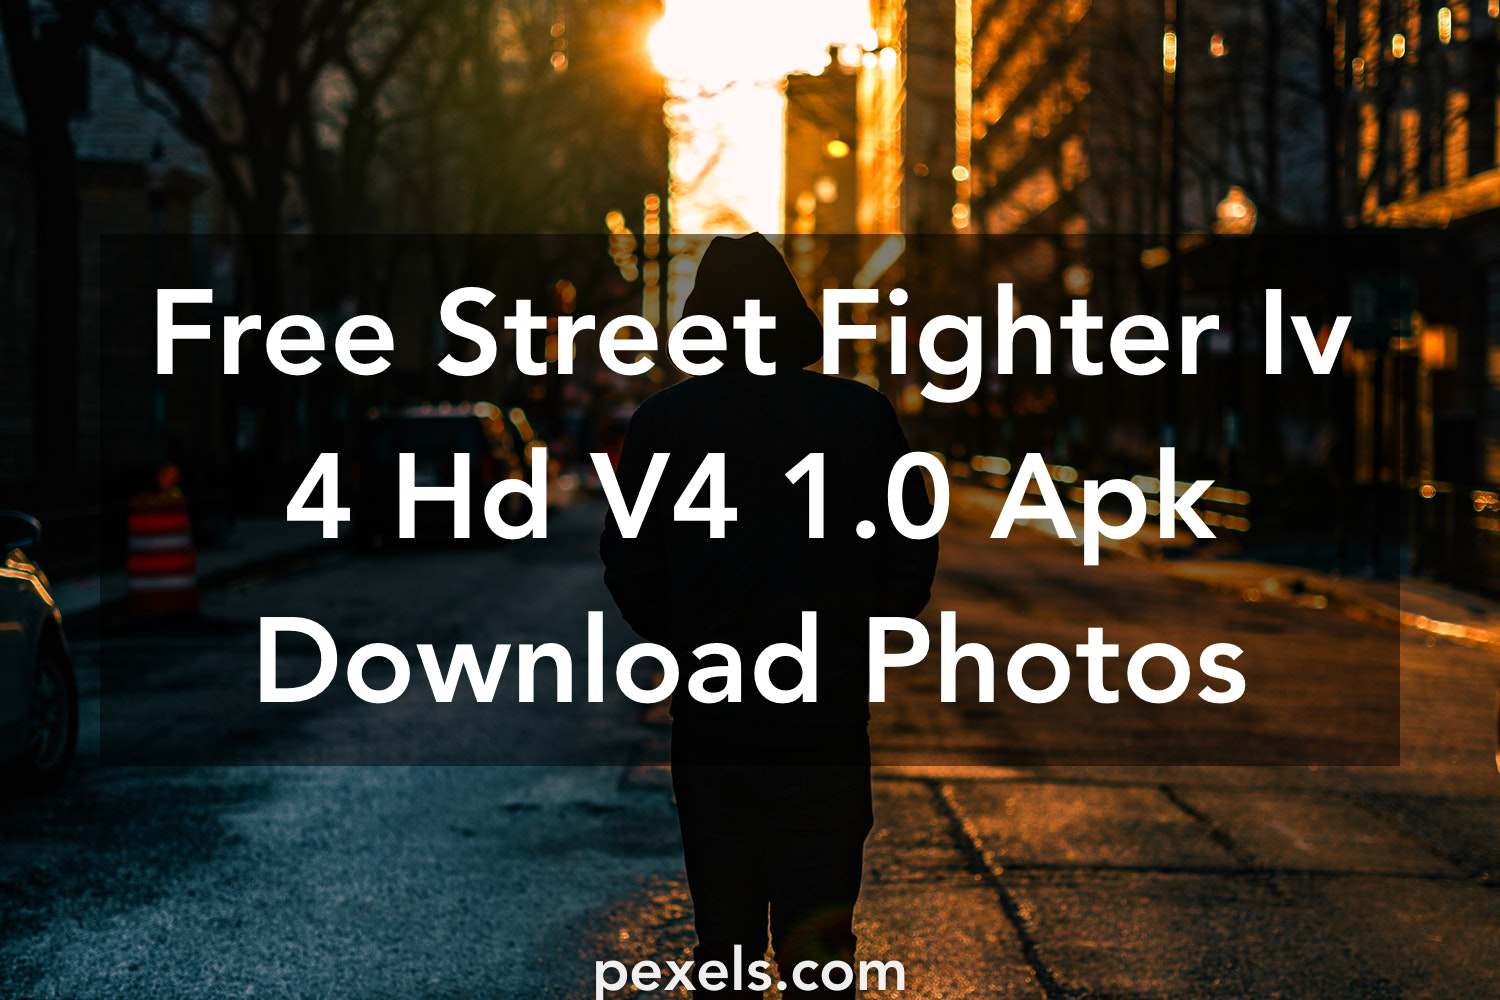 1000+ Amazing Street Fighter Iv 4 Hd V4 1 0 Apk Download